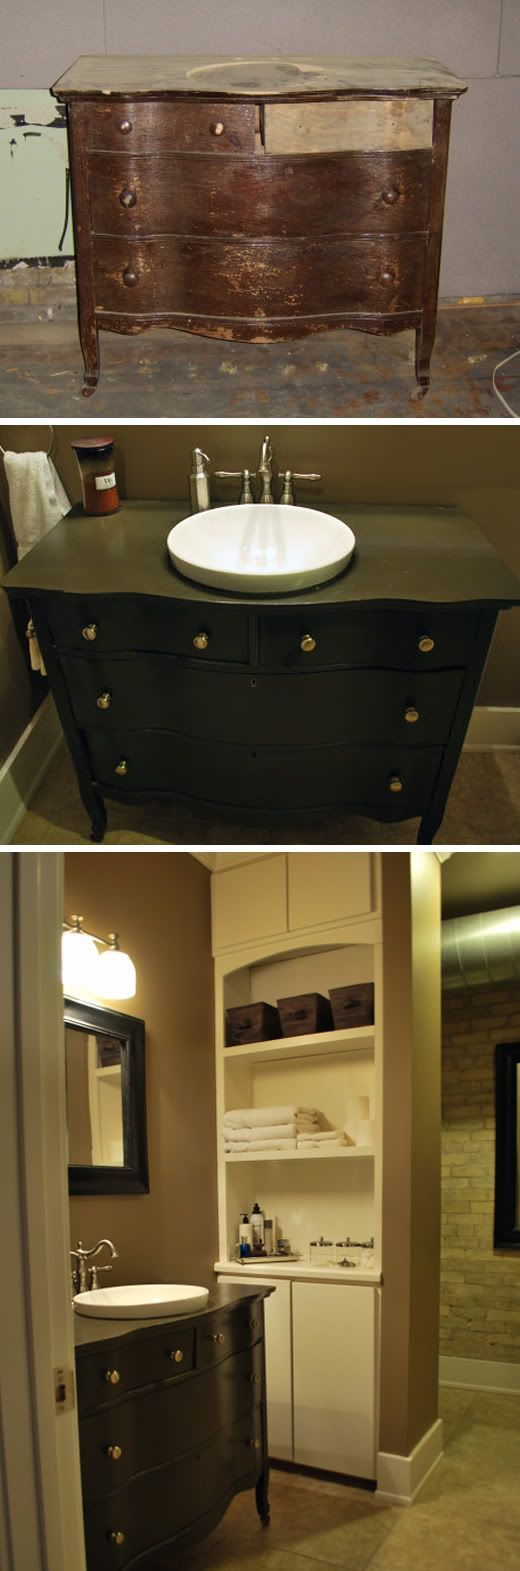 Simple DIY Furniture Transformation - 10.Dresser into Vanity - Diy & Crafts Ideas Magazine